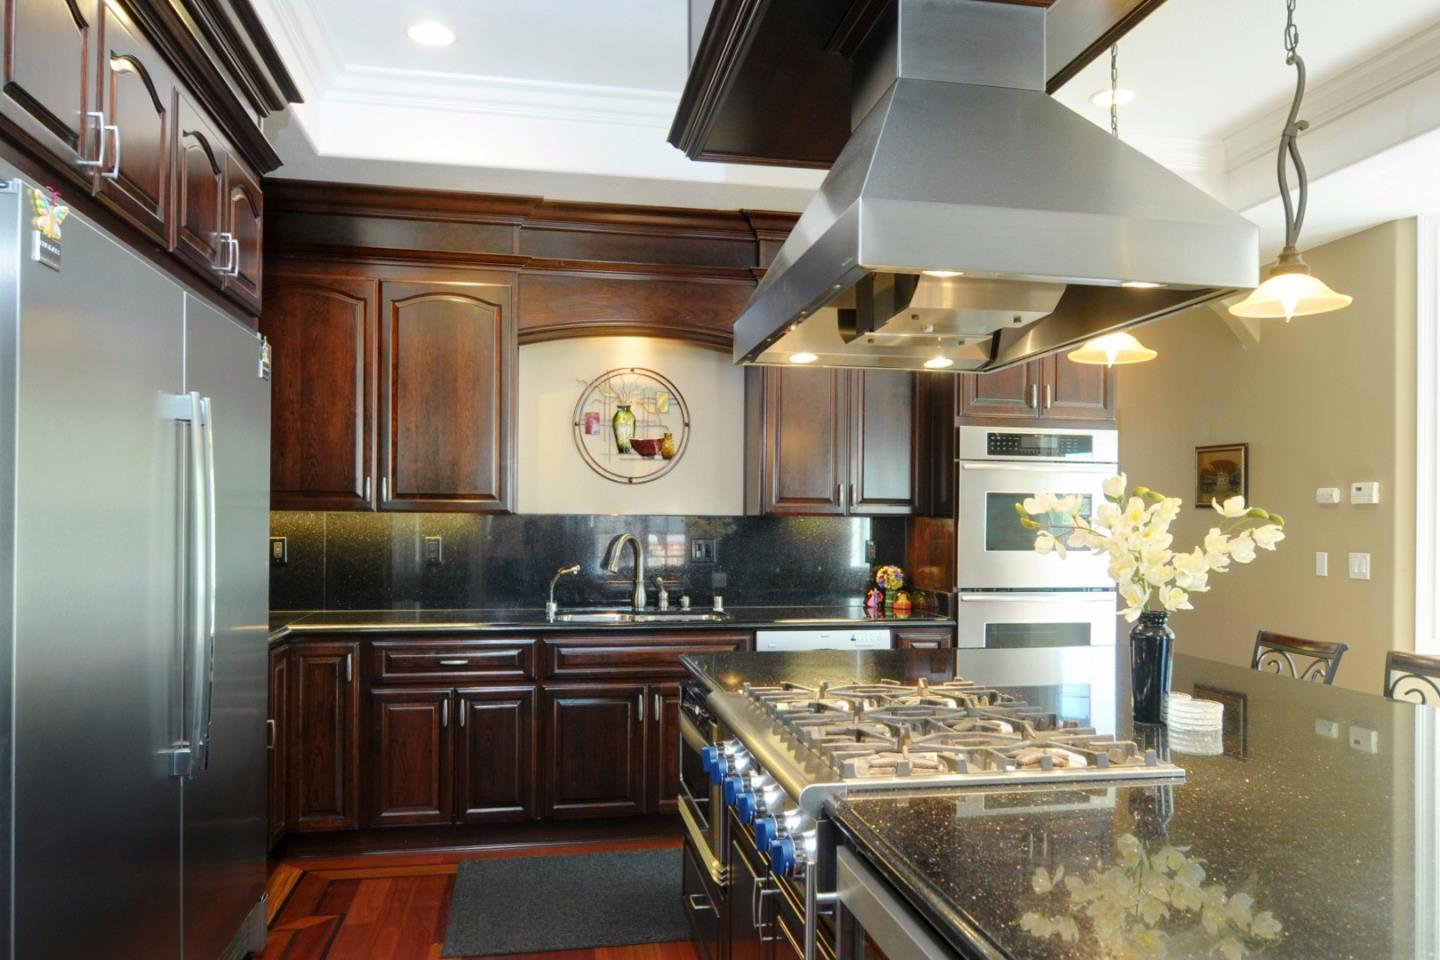 NEW KITCHENS - COMPLETE KITCHEN REMODEL. WE TAKE YOUR IDEA OF A DREAM KITCHEN AND MAKE THEM A REALITY.